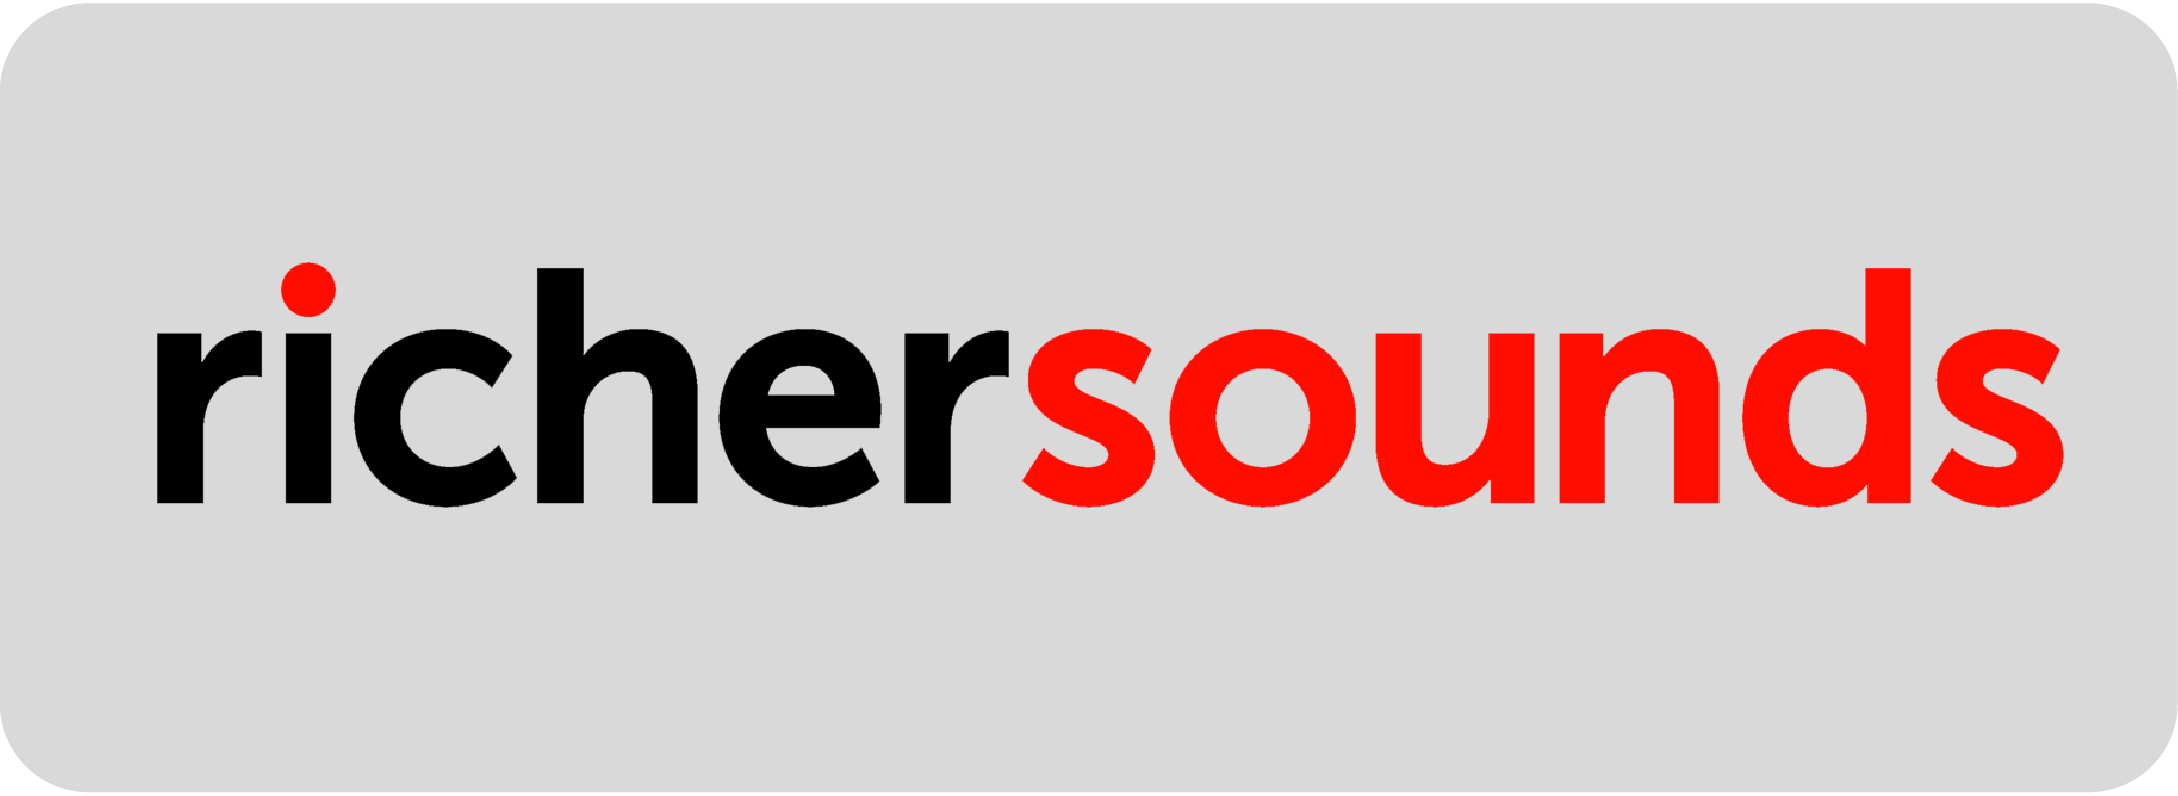 Connected Group Ltd Website Assets_Richer Sounds logo.png